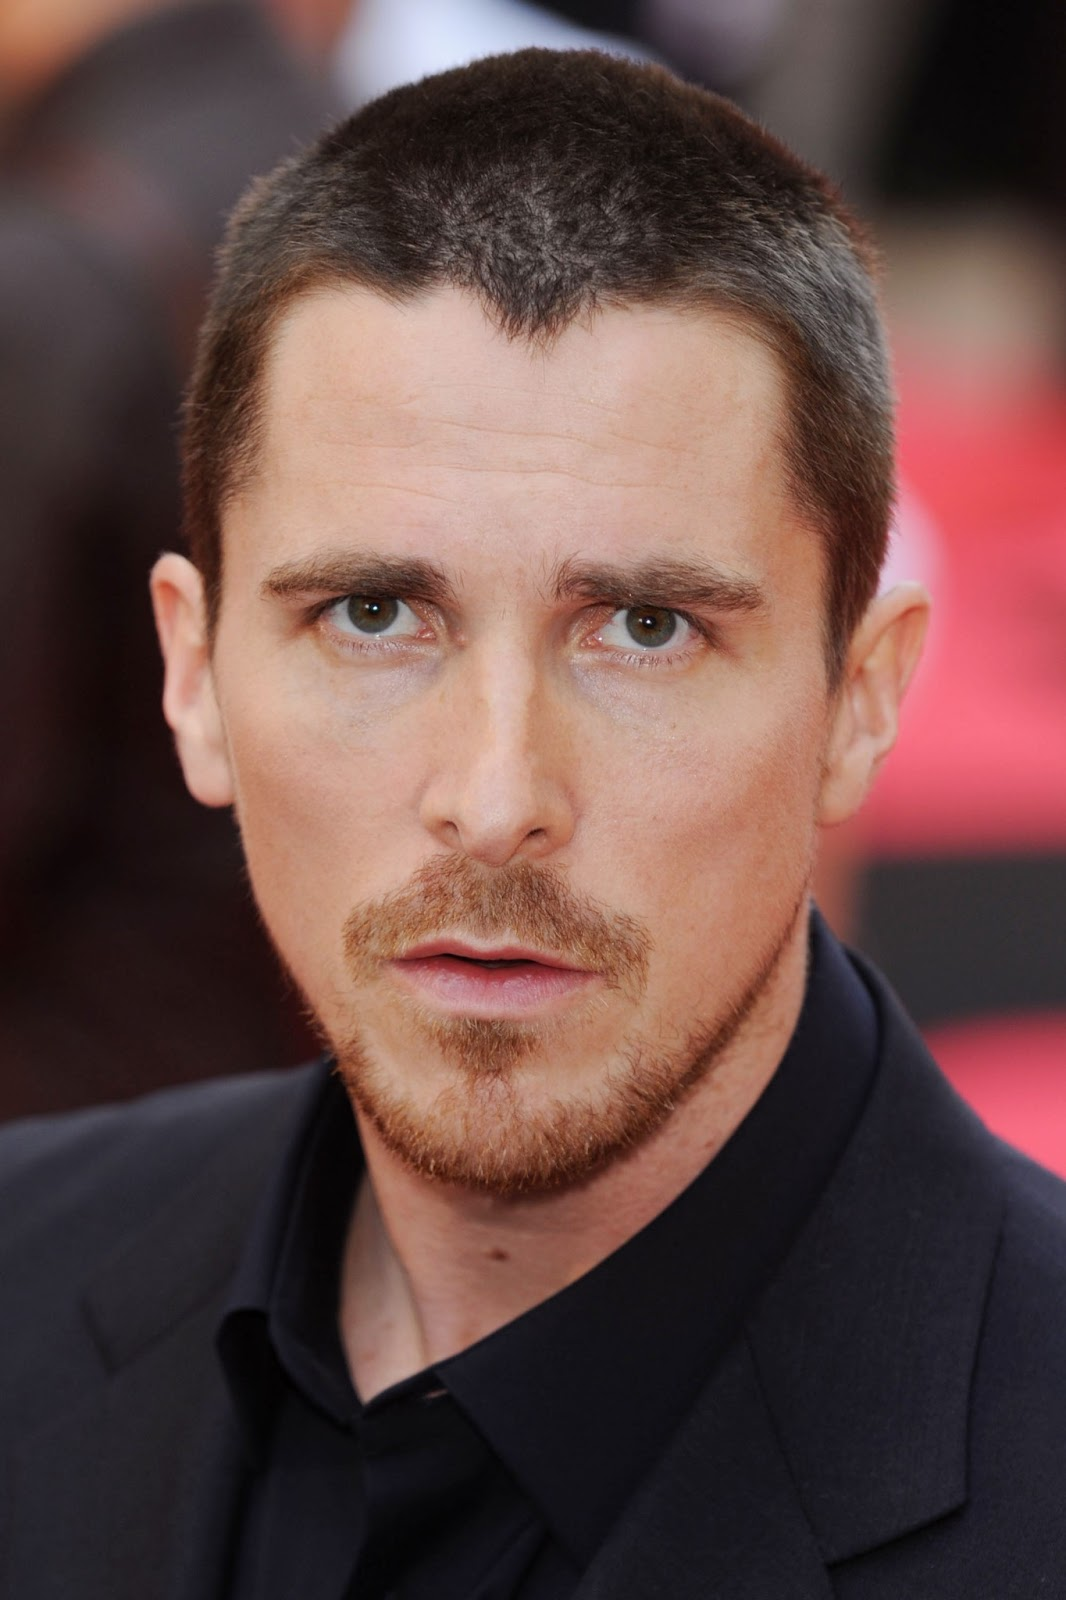 Christian Bale Wallpapers High Quality Download Free